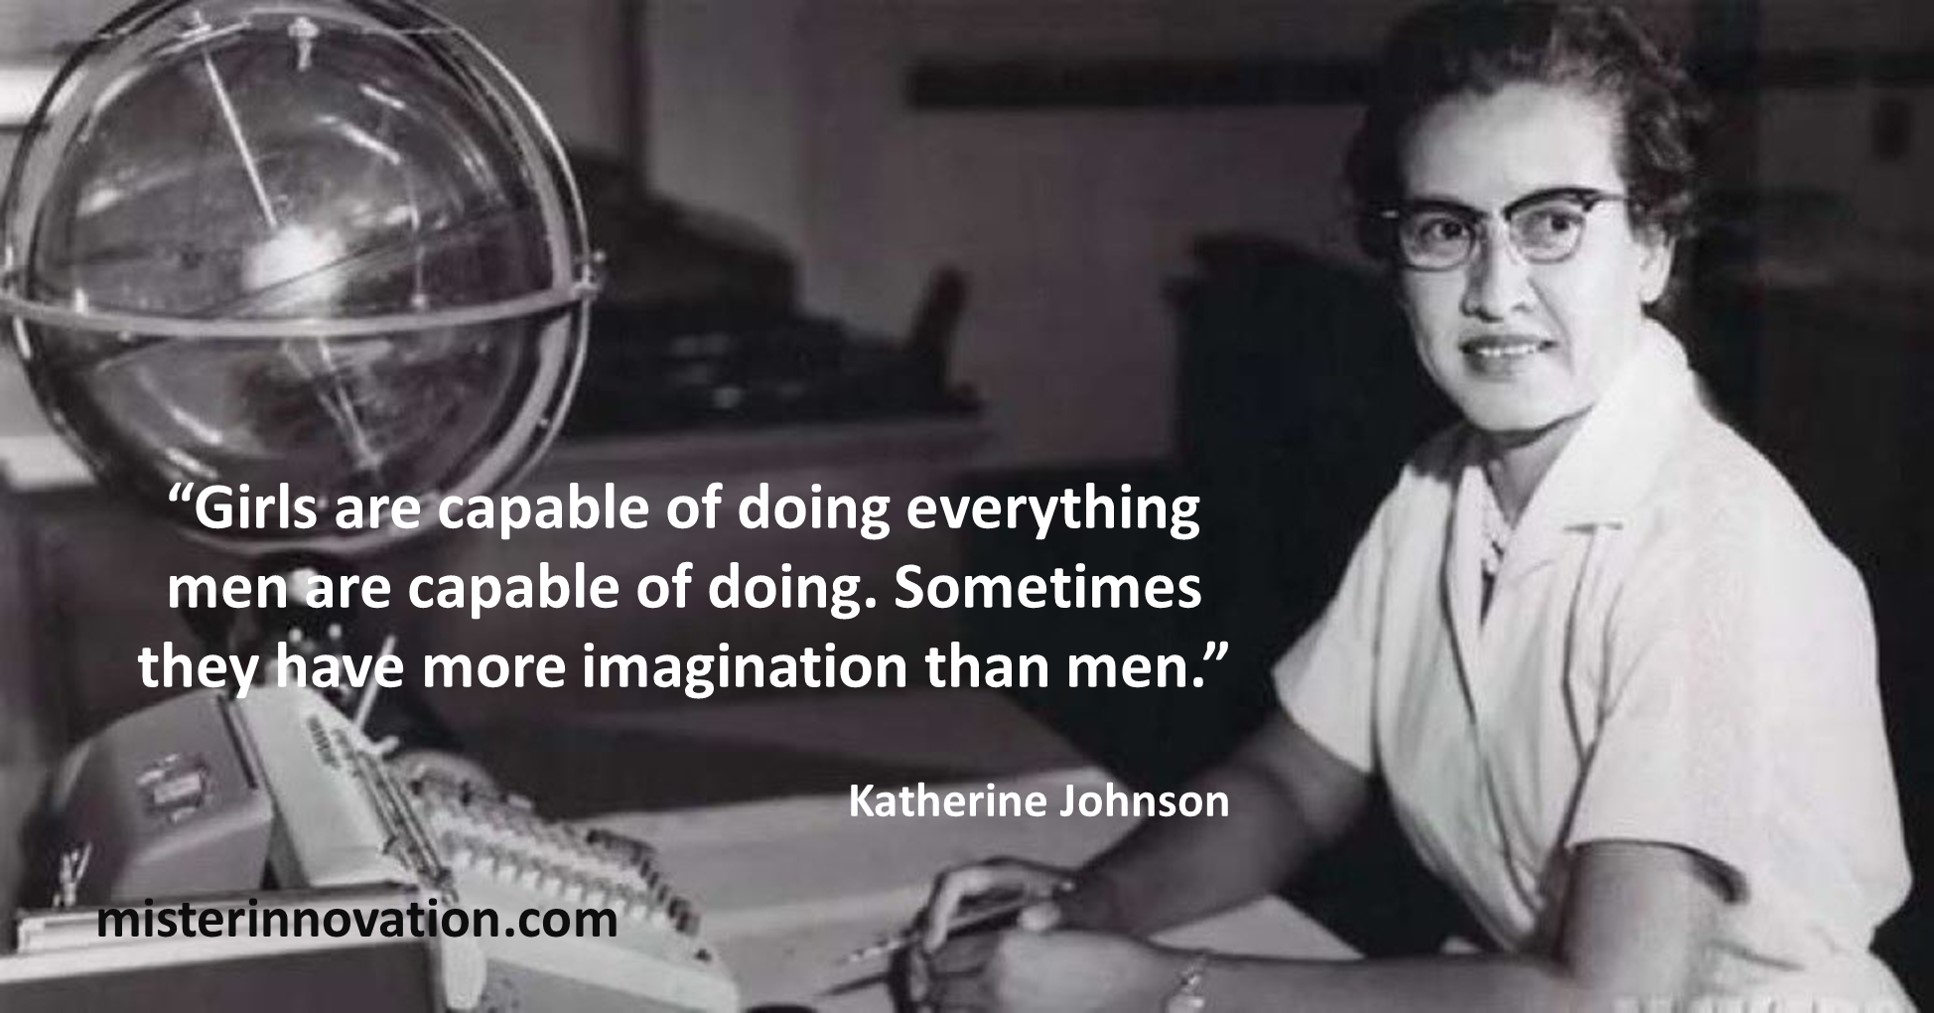 Katherine Johnson Quote on Girls Capability and Imagination